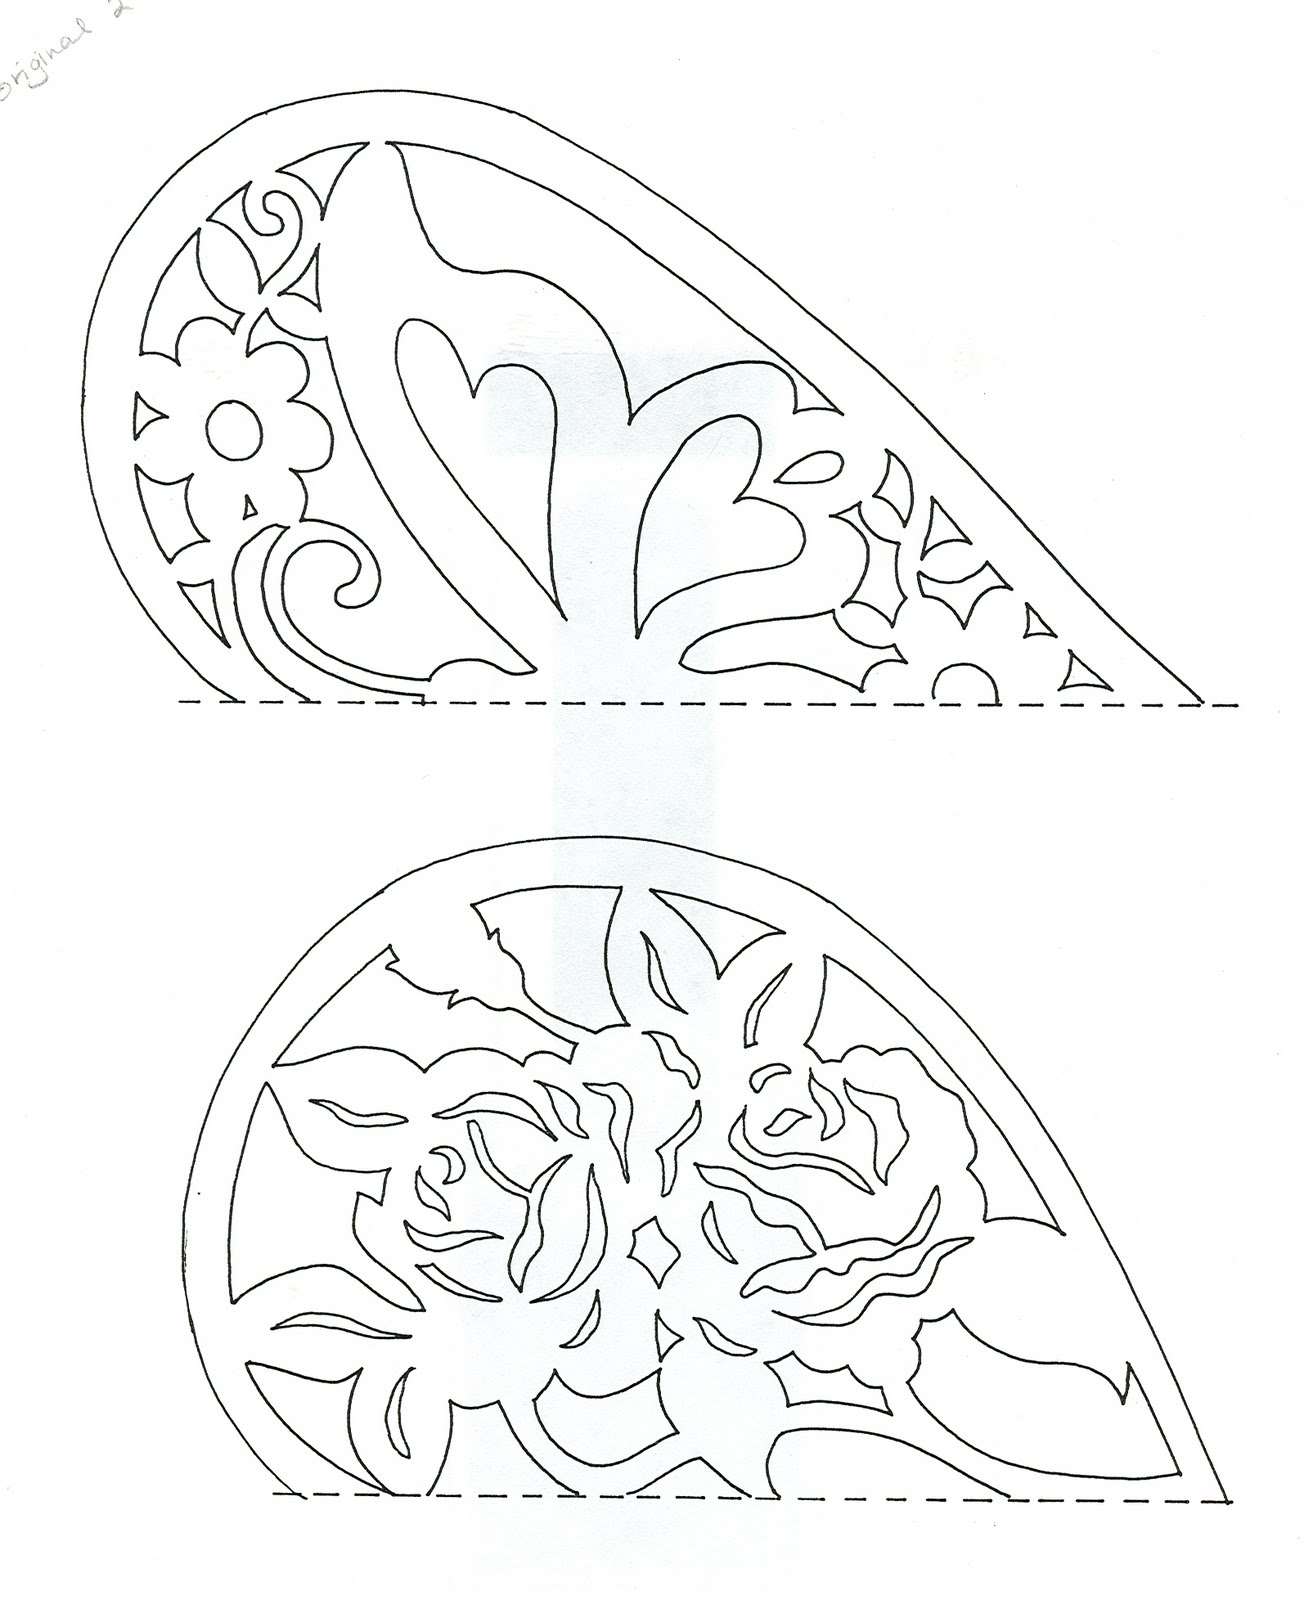 the top one has the butterfly, the bottom one a pretty roses pattern